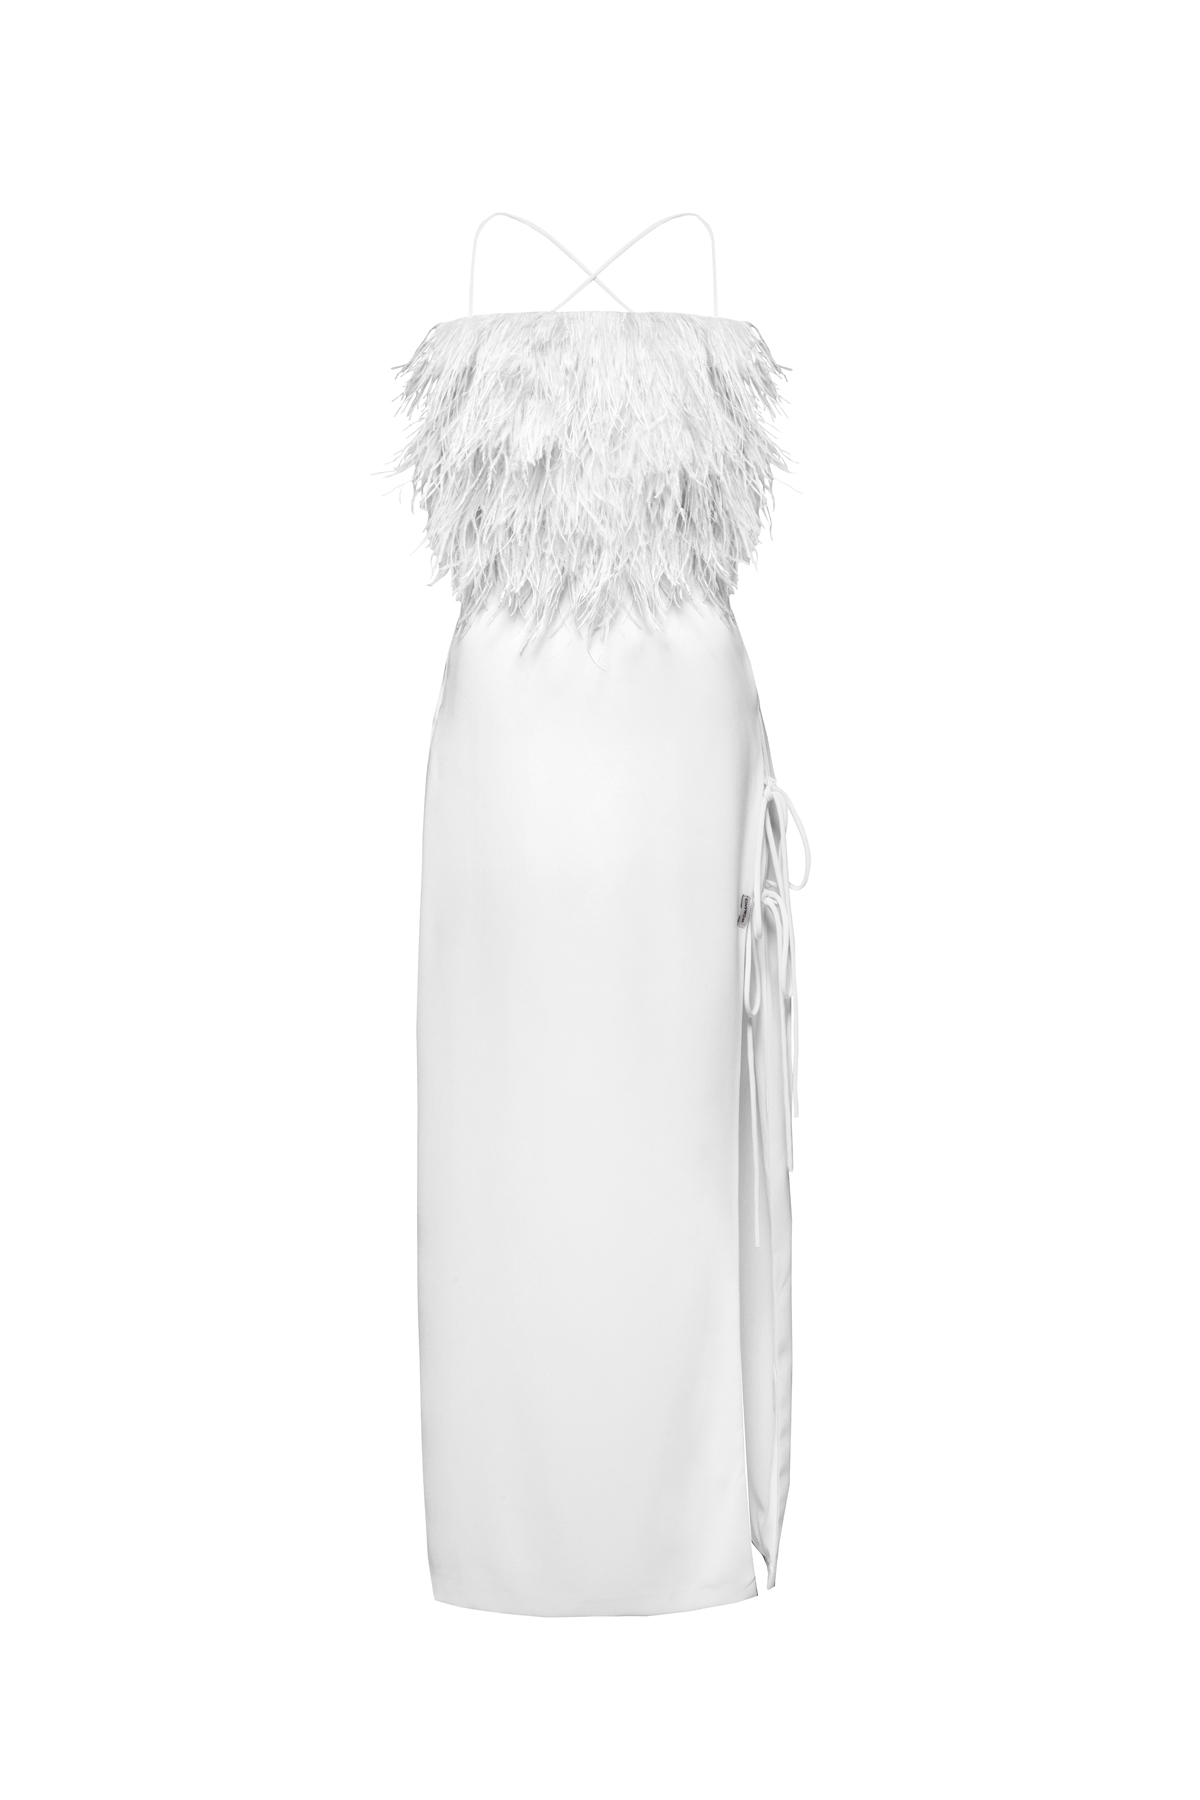 womace-lemon-crop-top-long-skirt-combo-dress-party-feathers-white